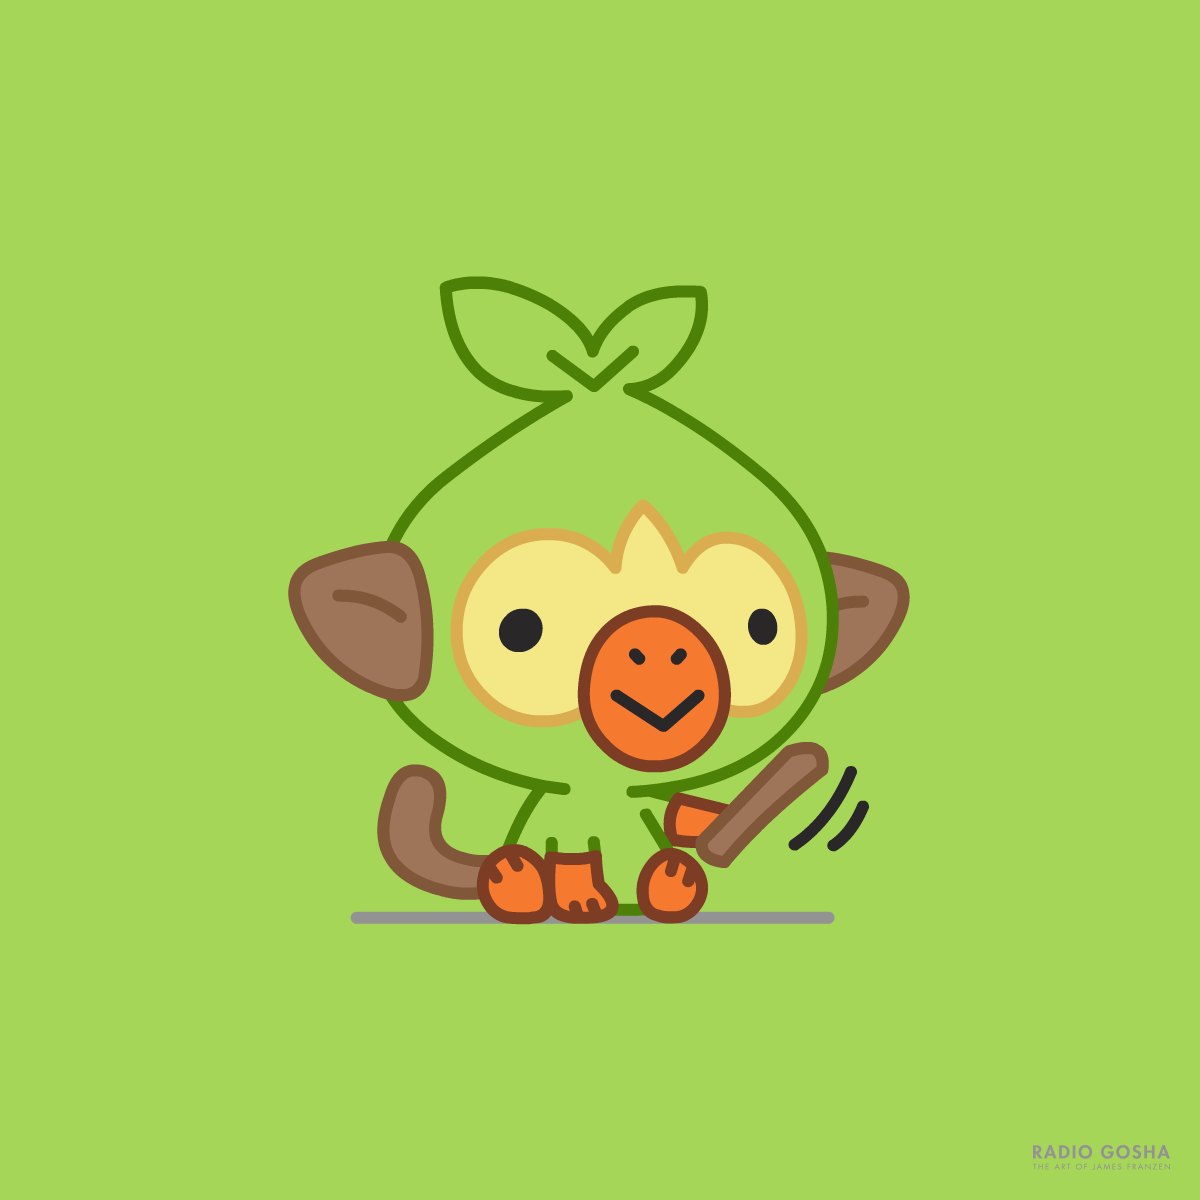 Grookey Pokemon Sword And Pokemon Shield By Goshadole On Deviantart If you're new, welcome to my channel! grookey pokemon sword and pokemon